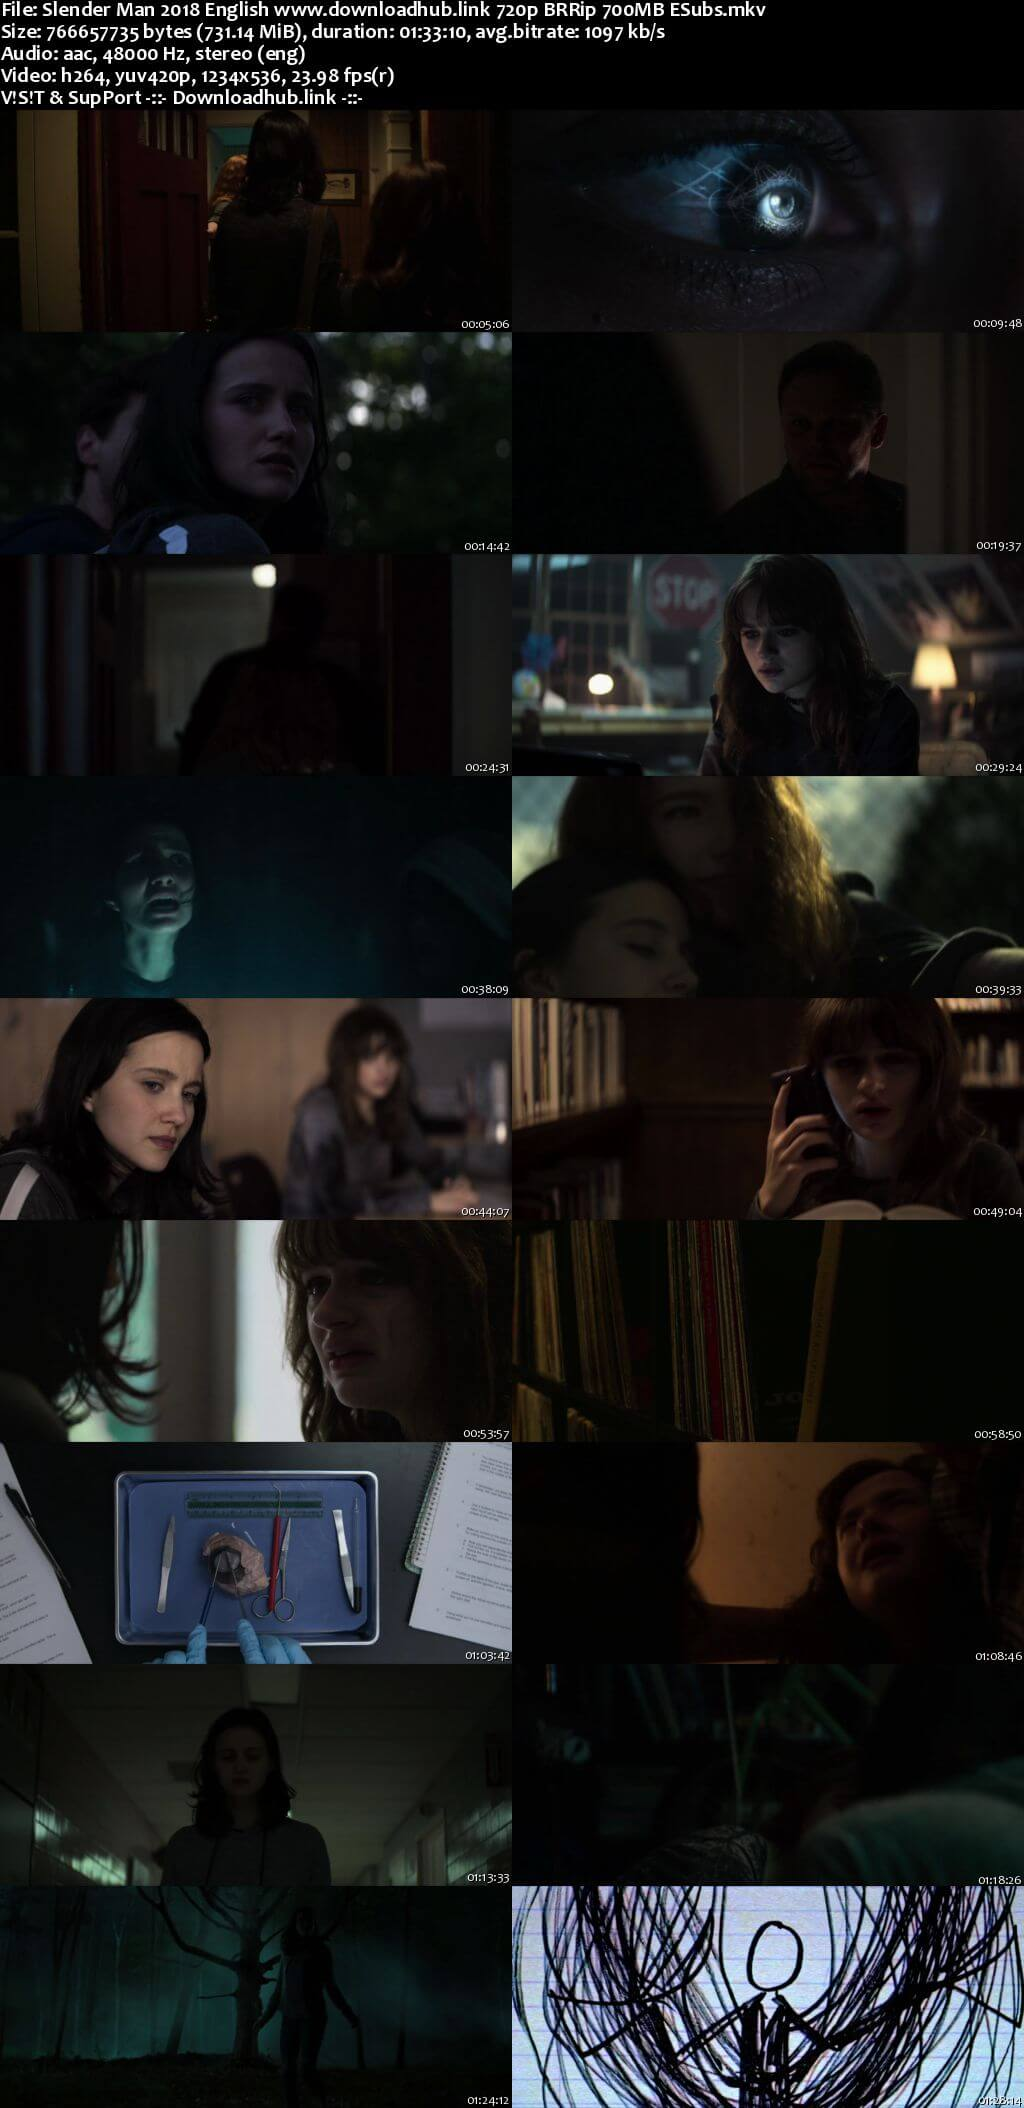 Slender Man 2018 English 720p BRRip 700MB ESubs